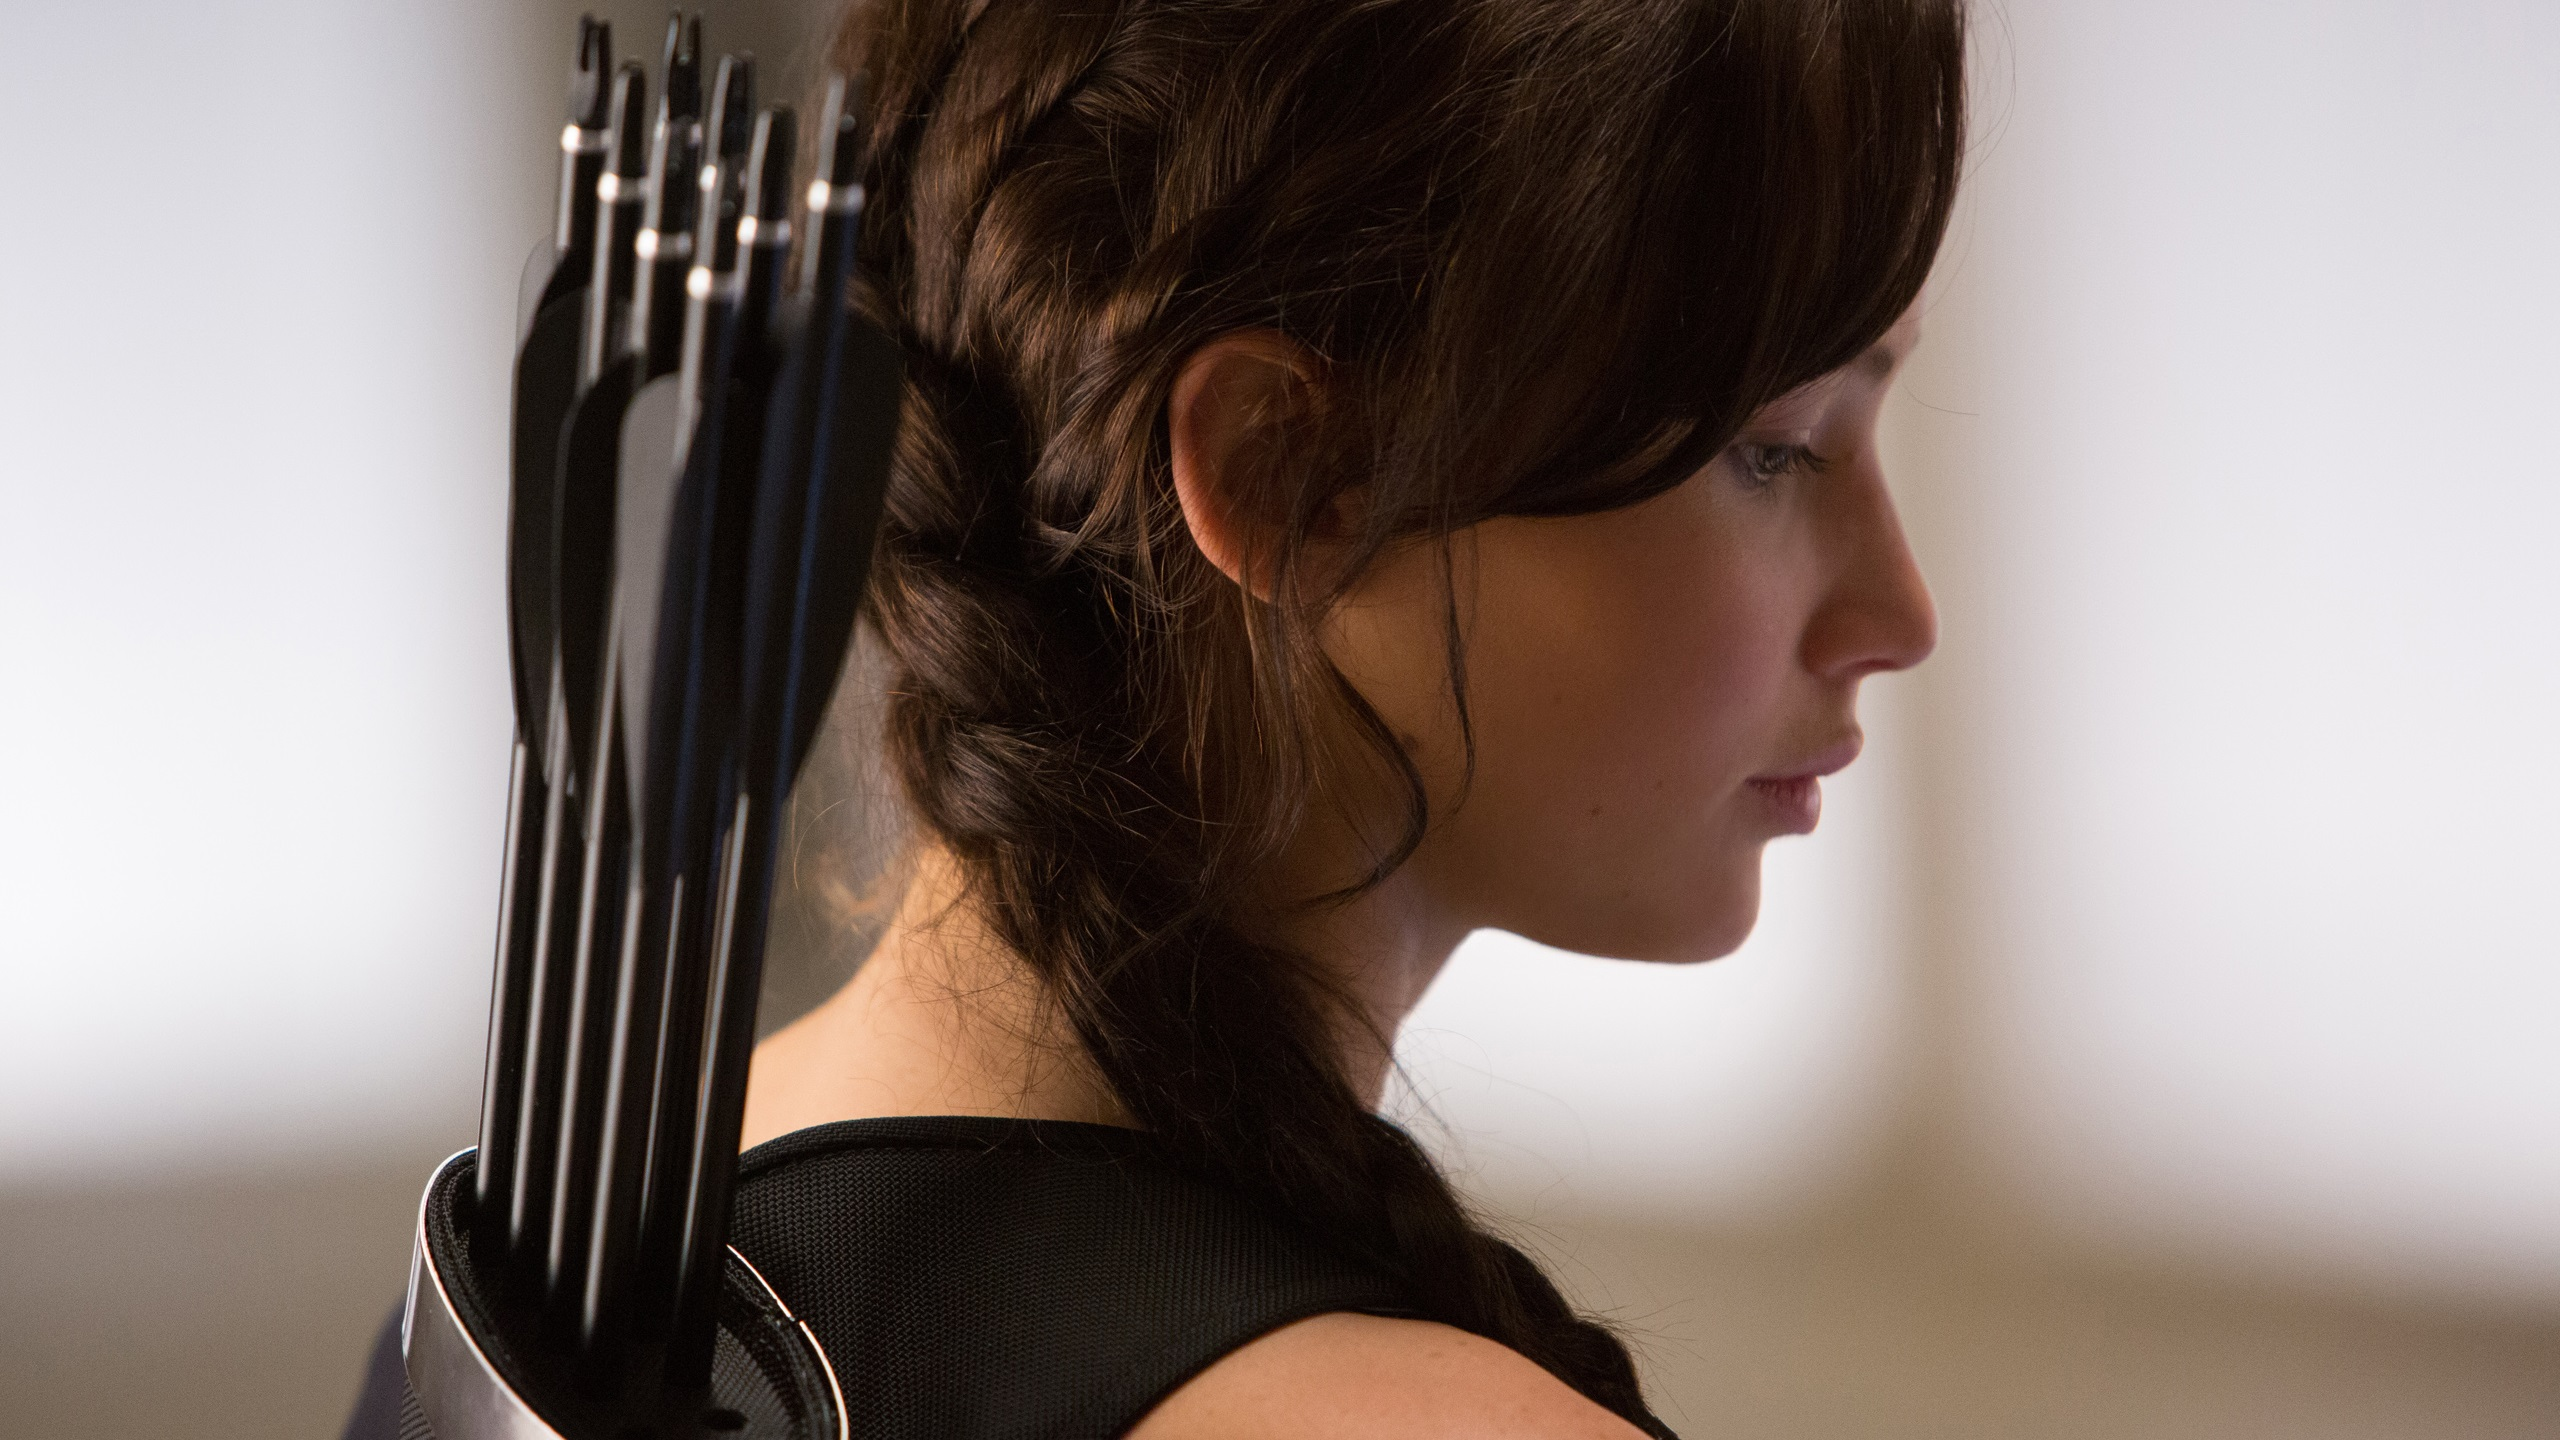 Wallpaper Jennifer Lawrence The Hunger Games Catching Fire 2013 Movie 2560x1600 Hd Picture Image